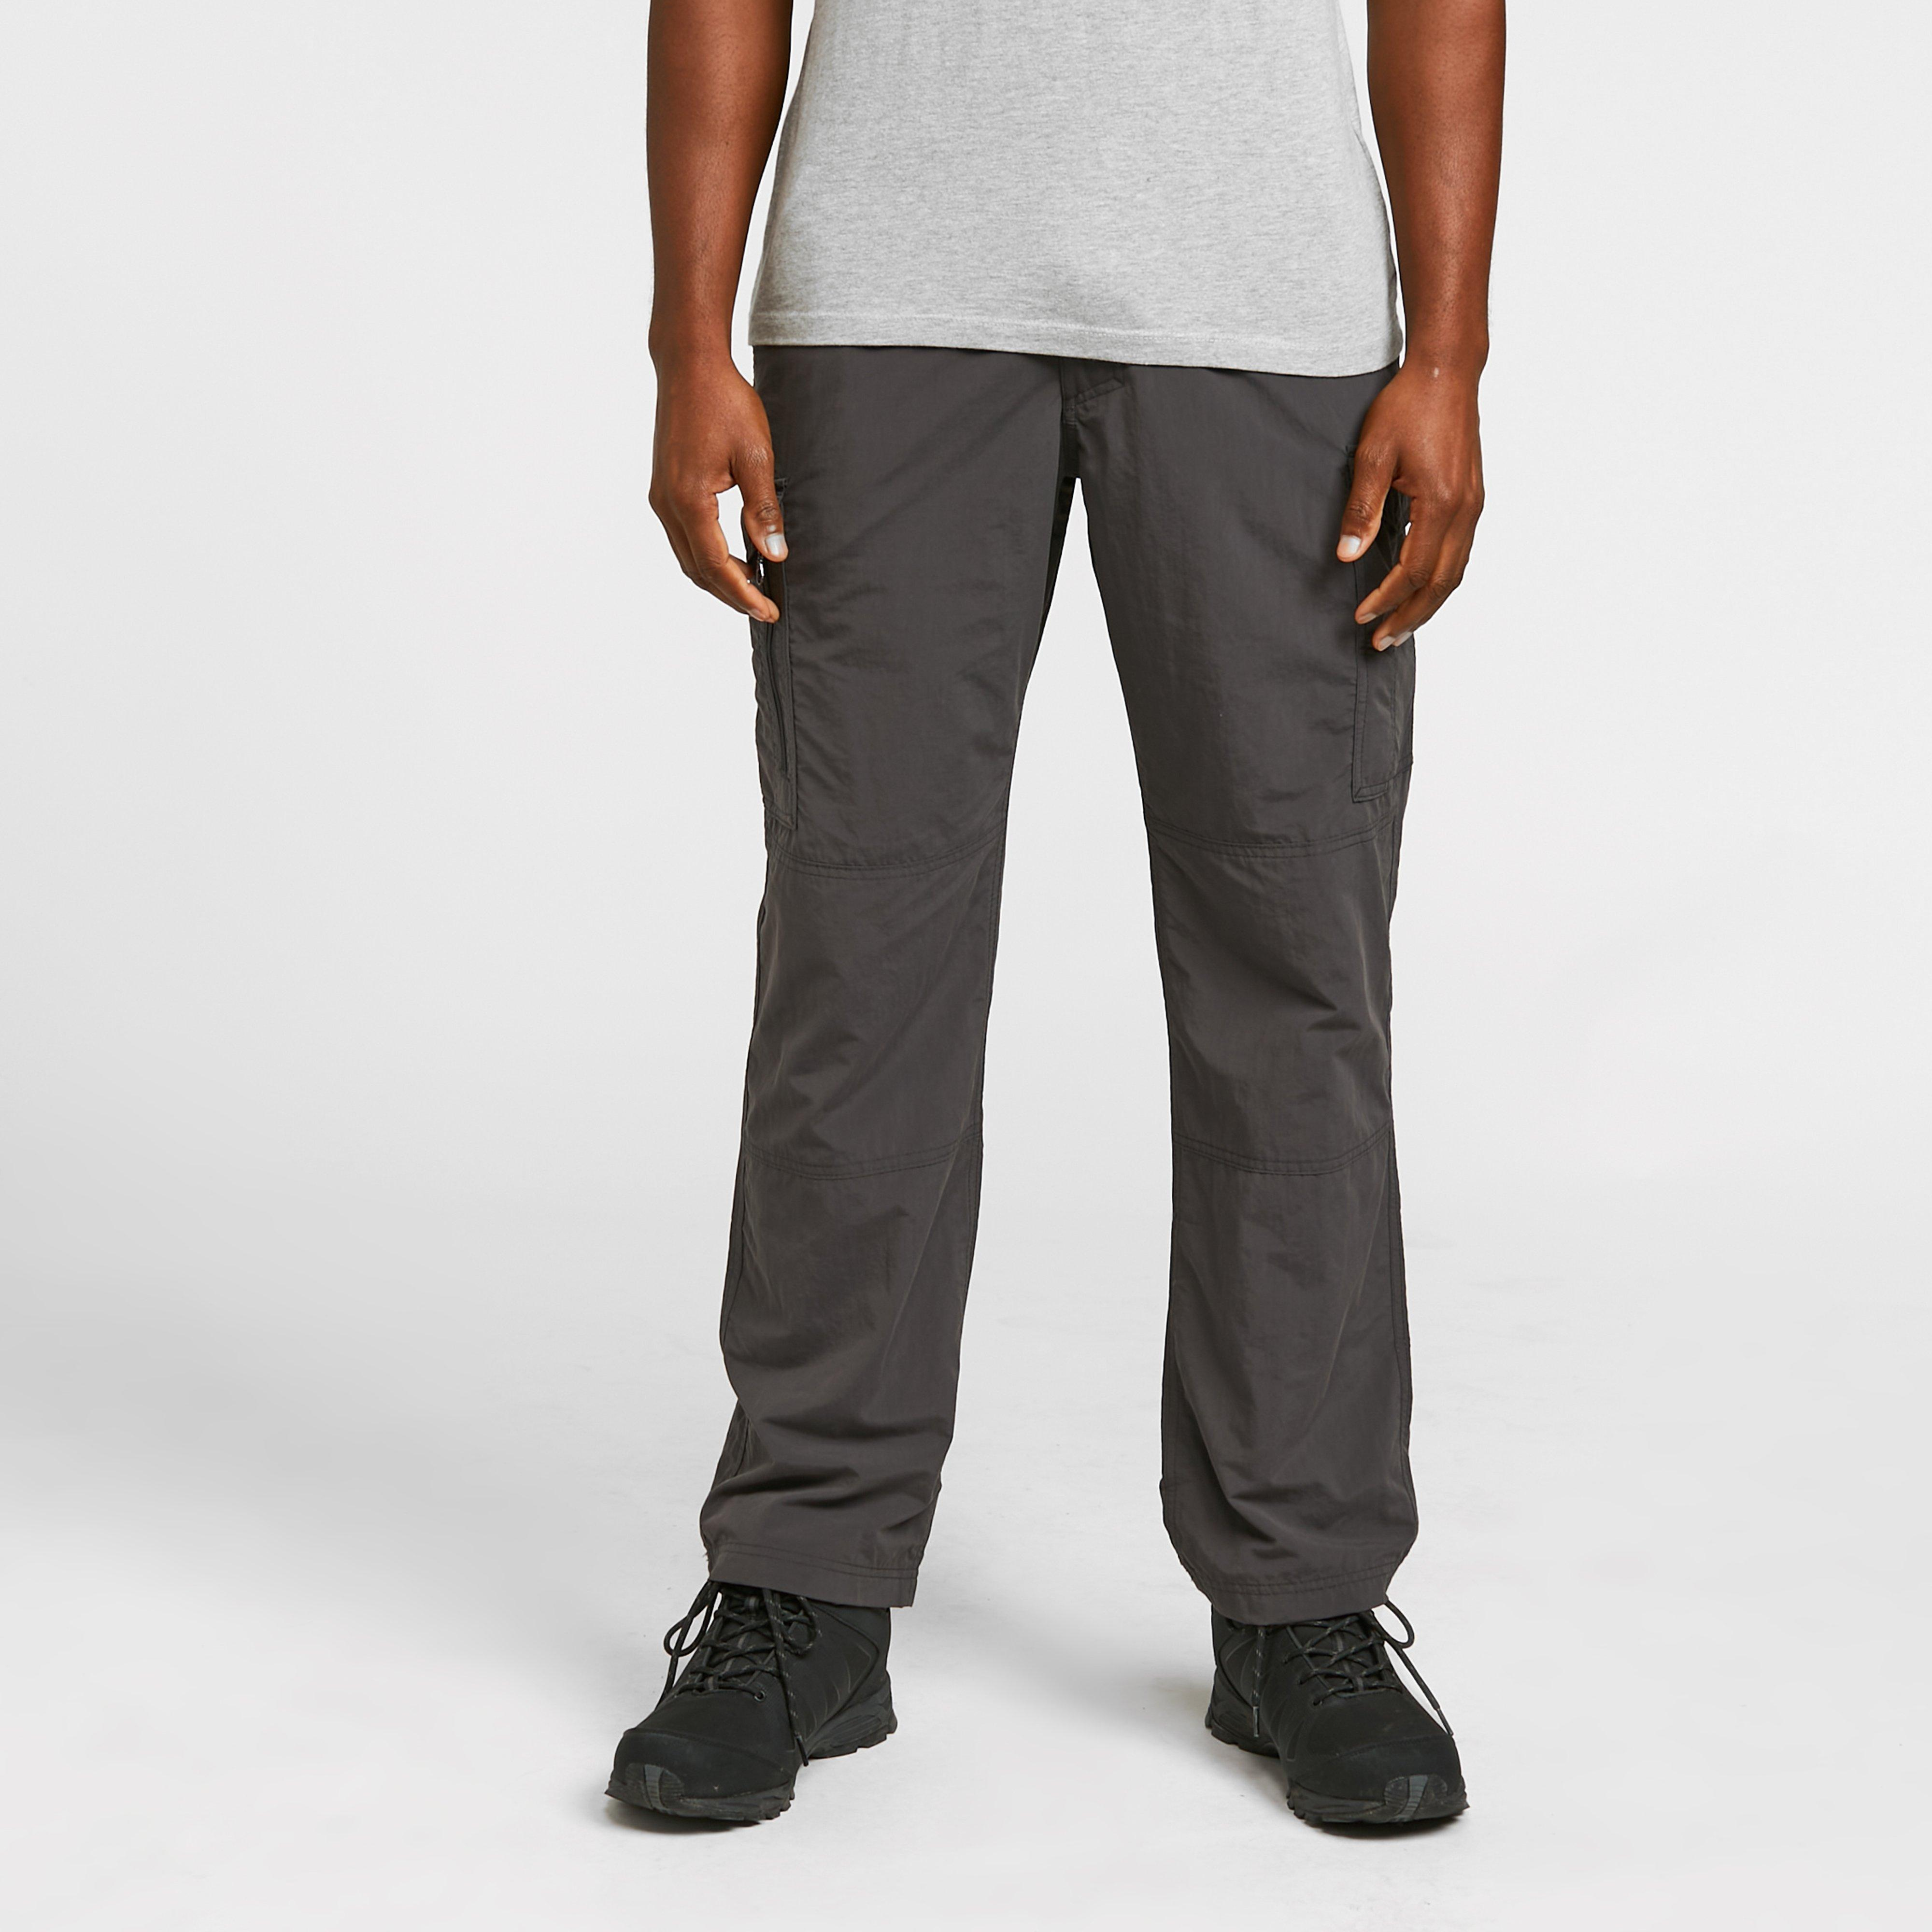 Craghoppers Craghoppers Mens Nosilife Cargo II Trousers